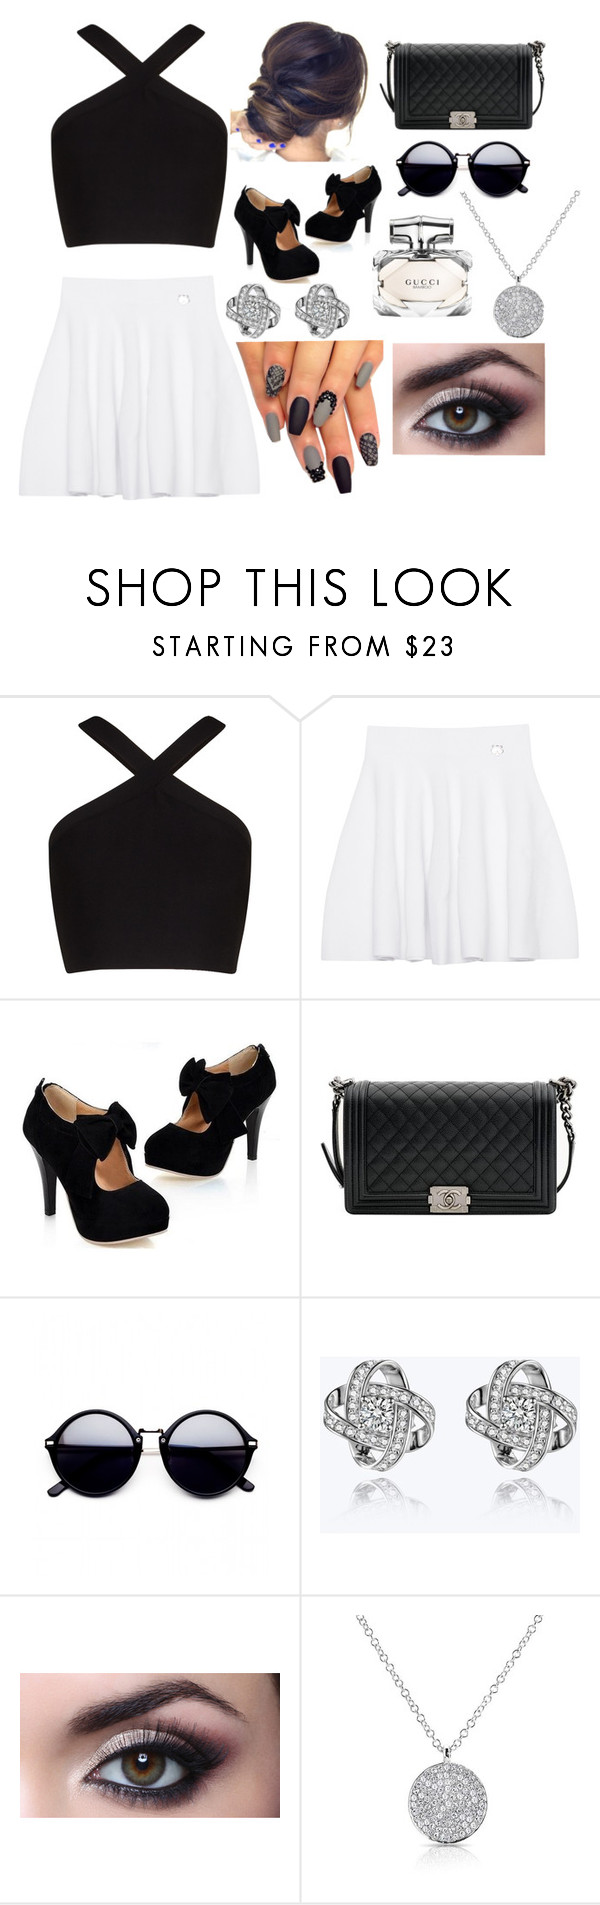 """""""New Idea 💖"""" by phoebe-66 ❤ liked on Polyvore featuring BCBGMAXAZRIA, Kenzo, Chanel, Anne Sisteron and Gucci"""